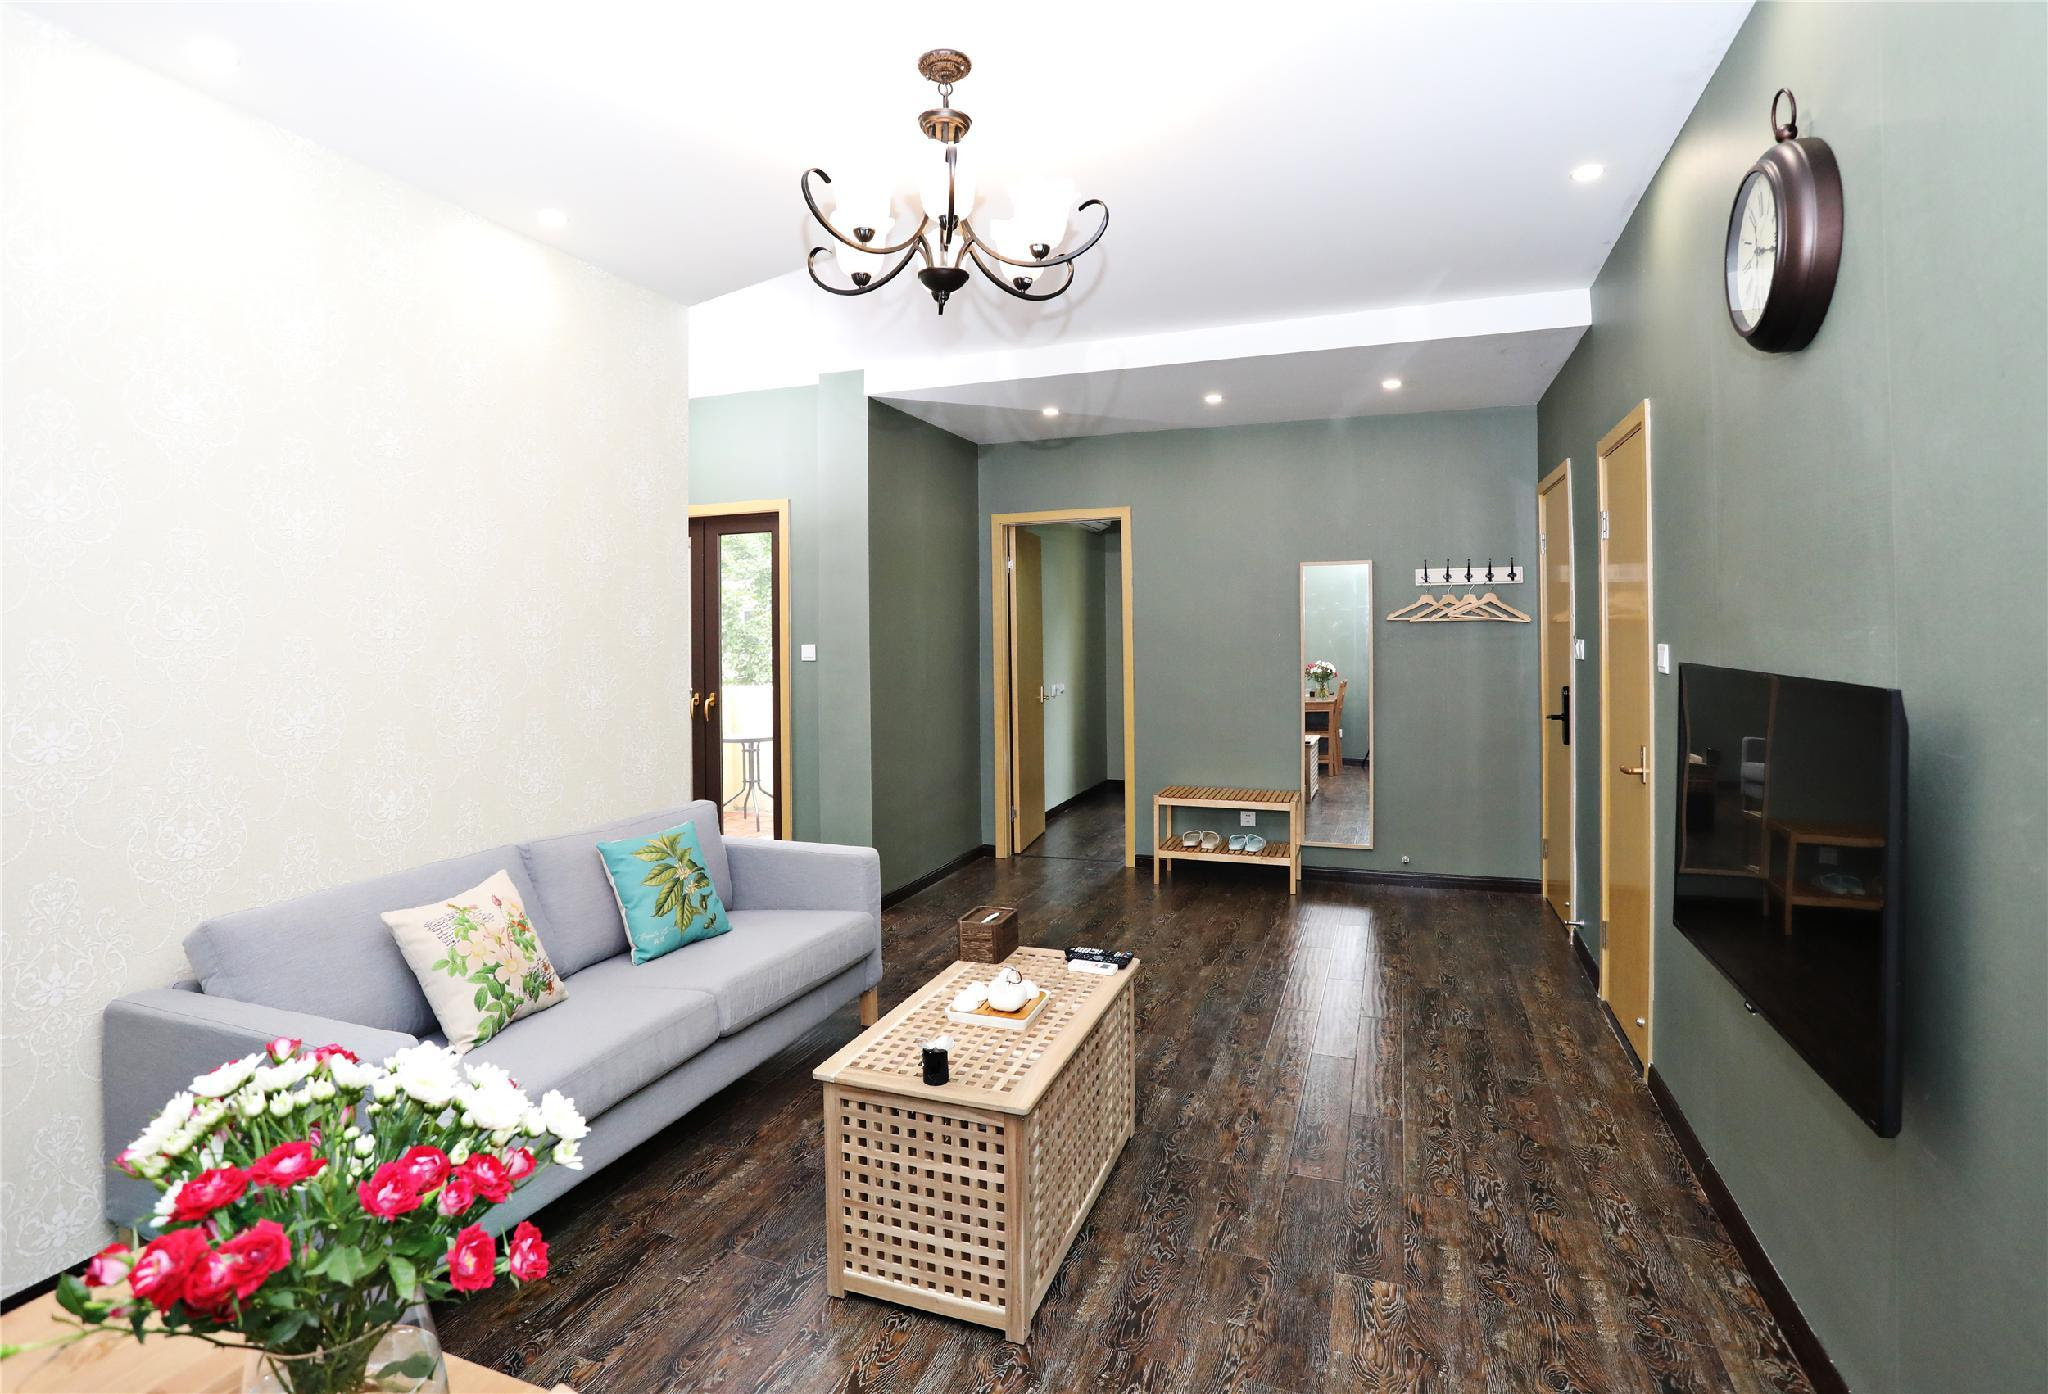 Family Time 2 Bedroom Studio I with Floor Heating Reviews